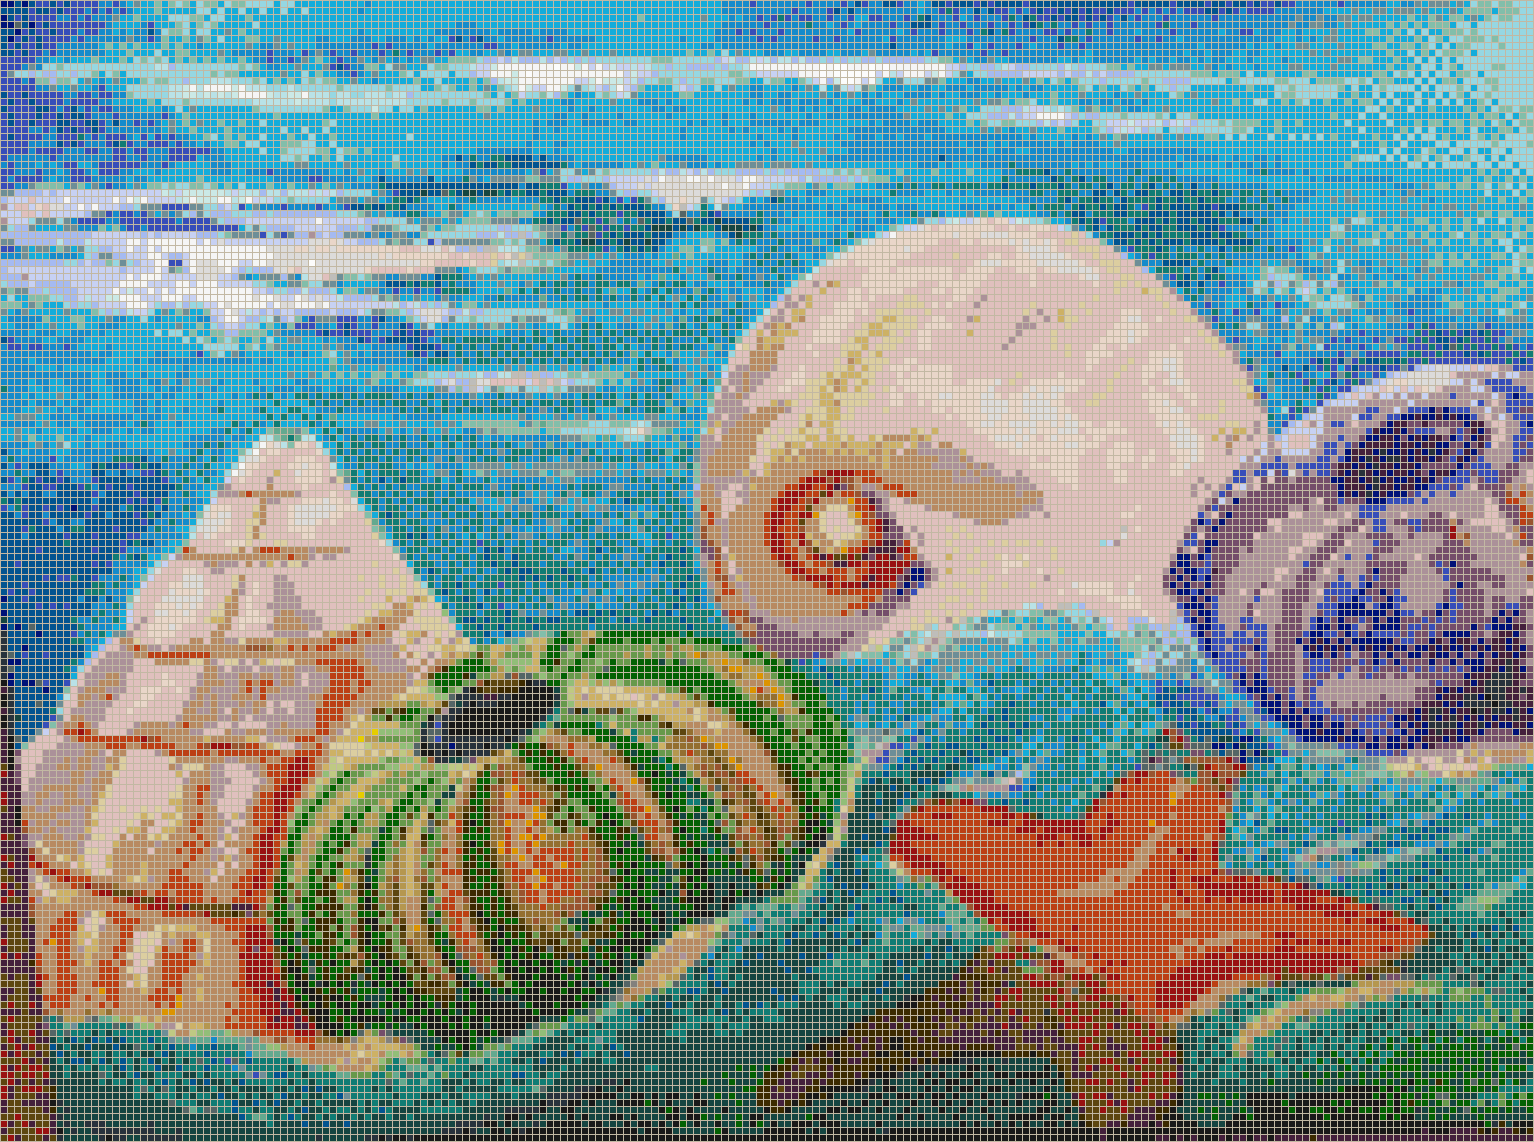 Swirling Sea Shells - Mosaic Tile Picture Art